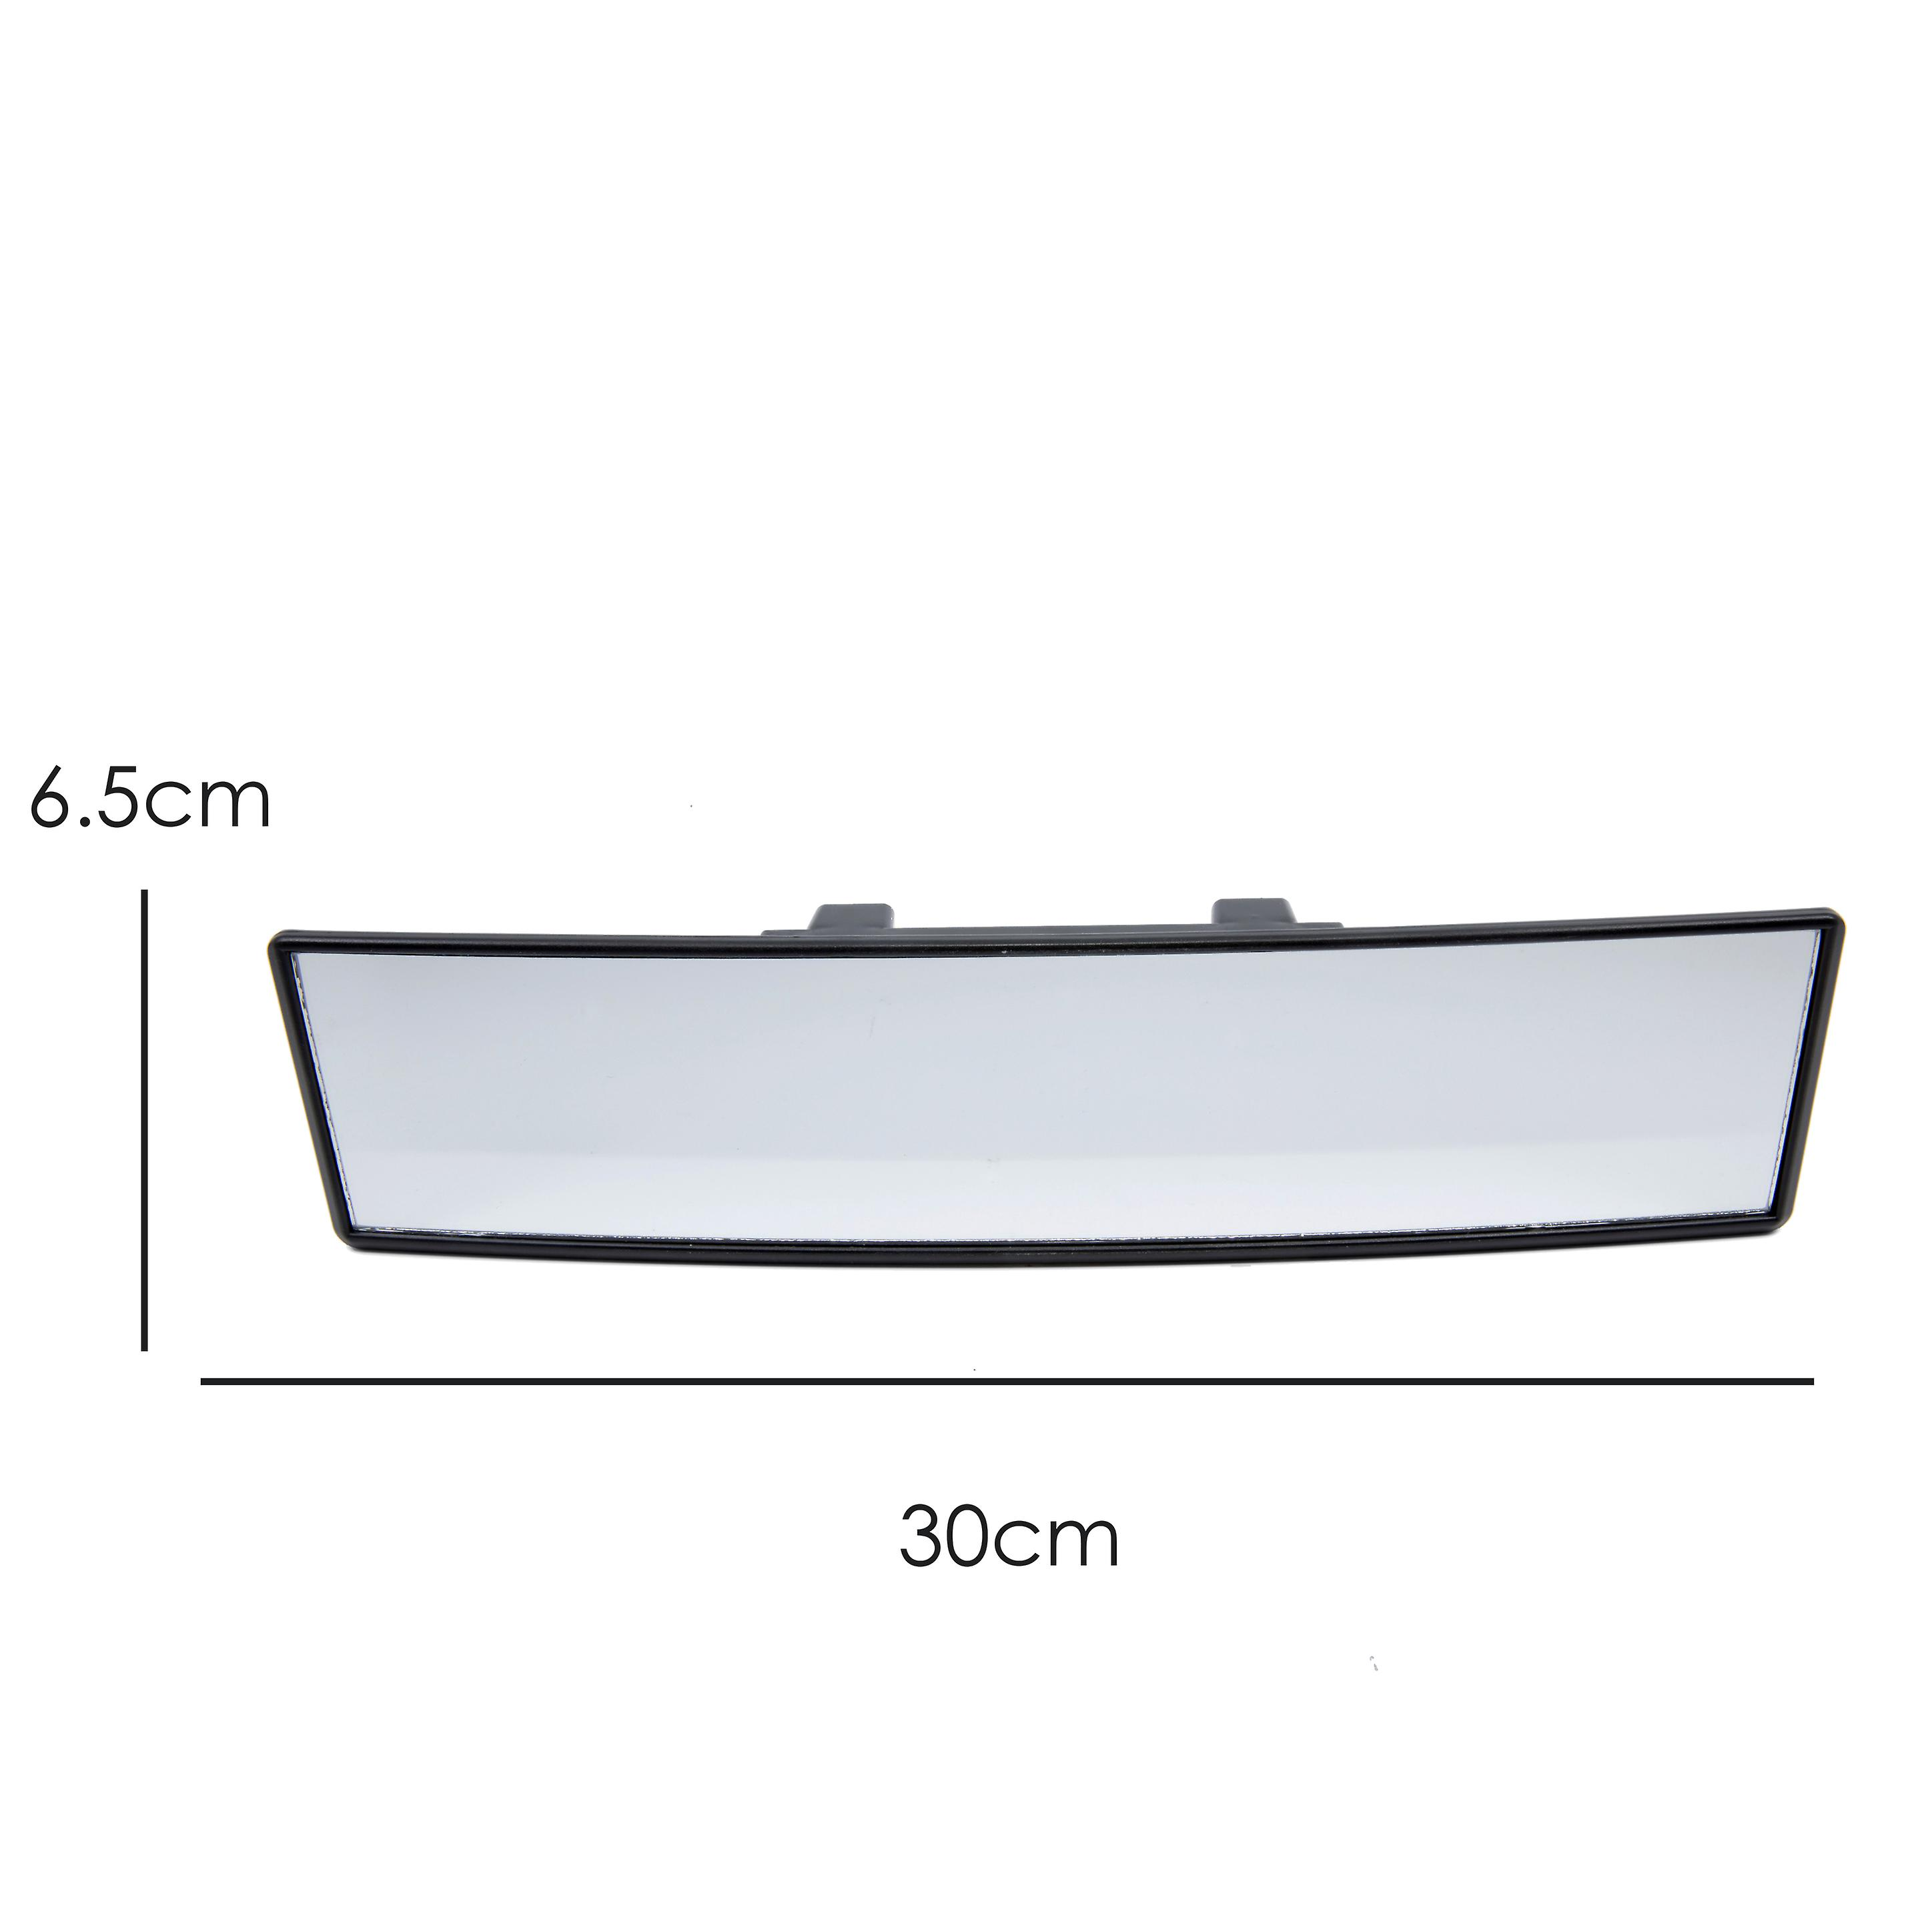 TRIXES Extra Wide Curved Rear View Mirror 300mm Clip-On Panoramic Blind Spot Learner Driver